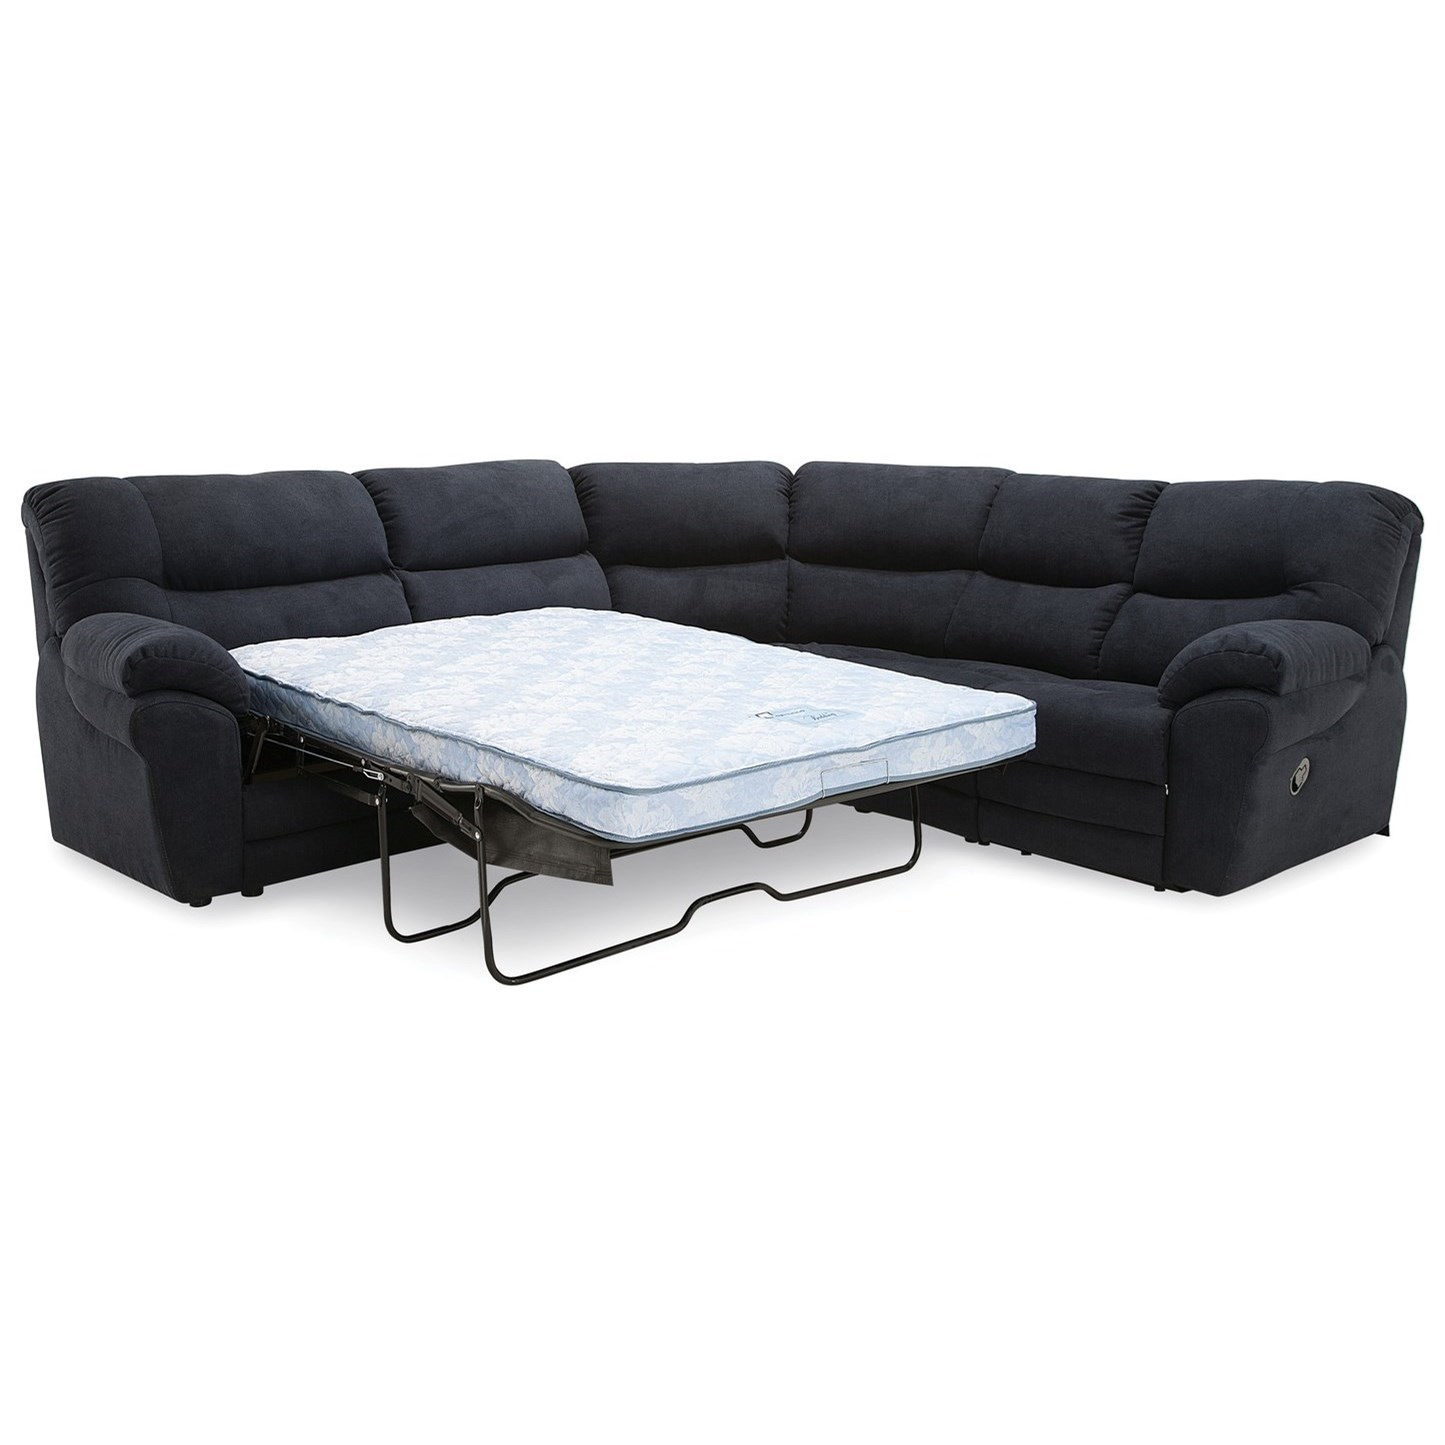 Palliser Divo 4-Seat Reclining Sectional Sofa with Sleeper Bed ...